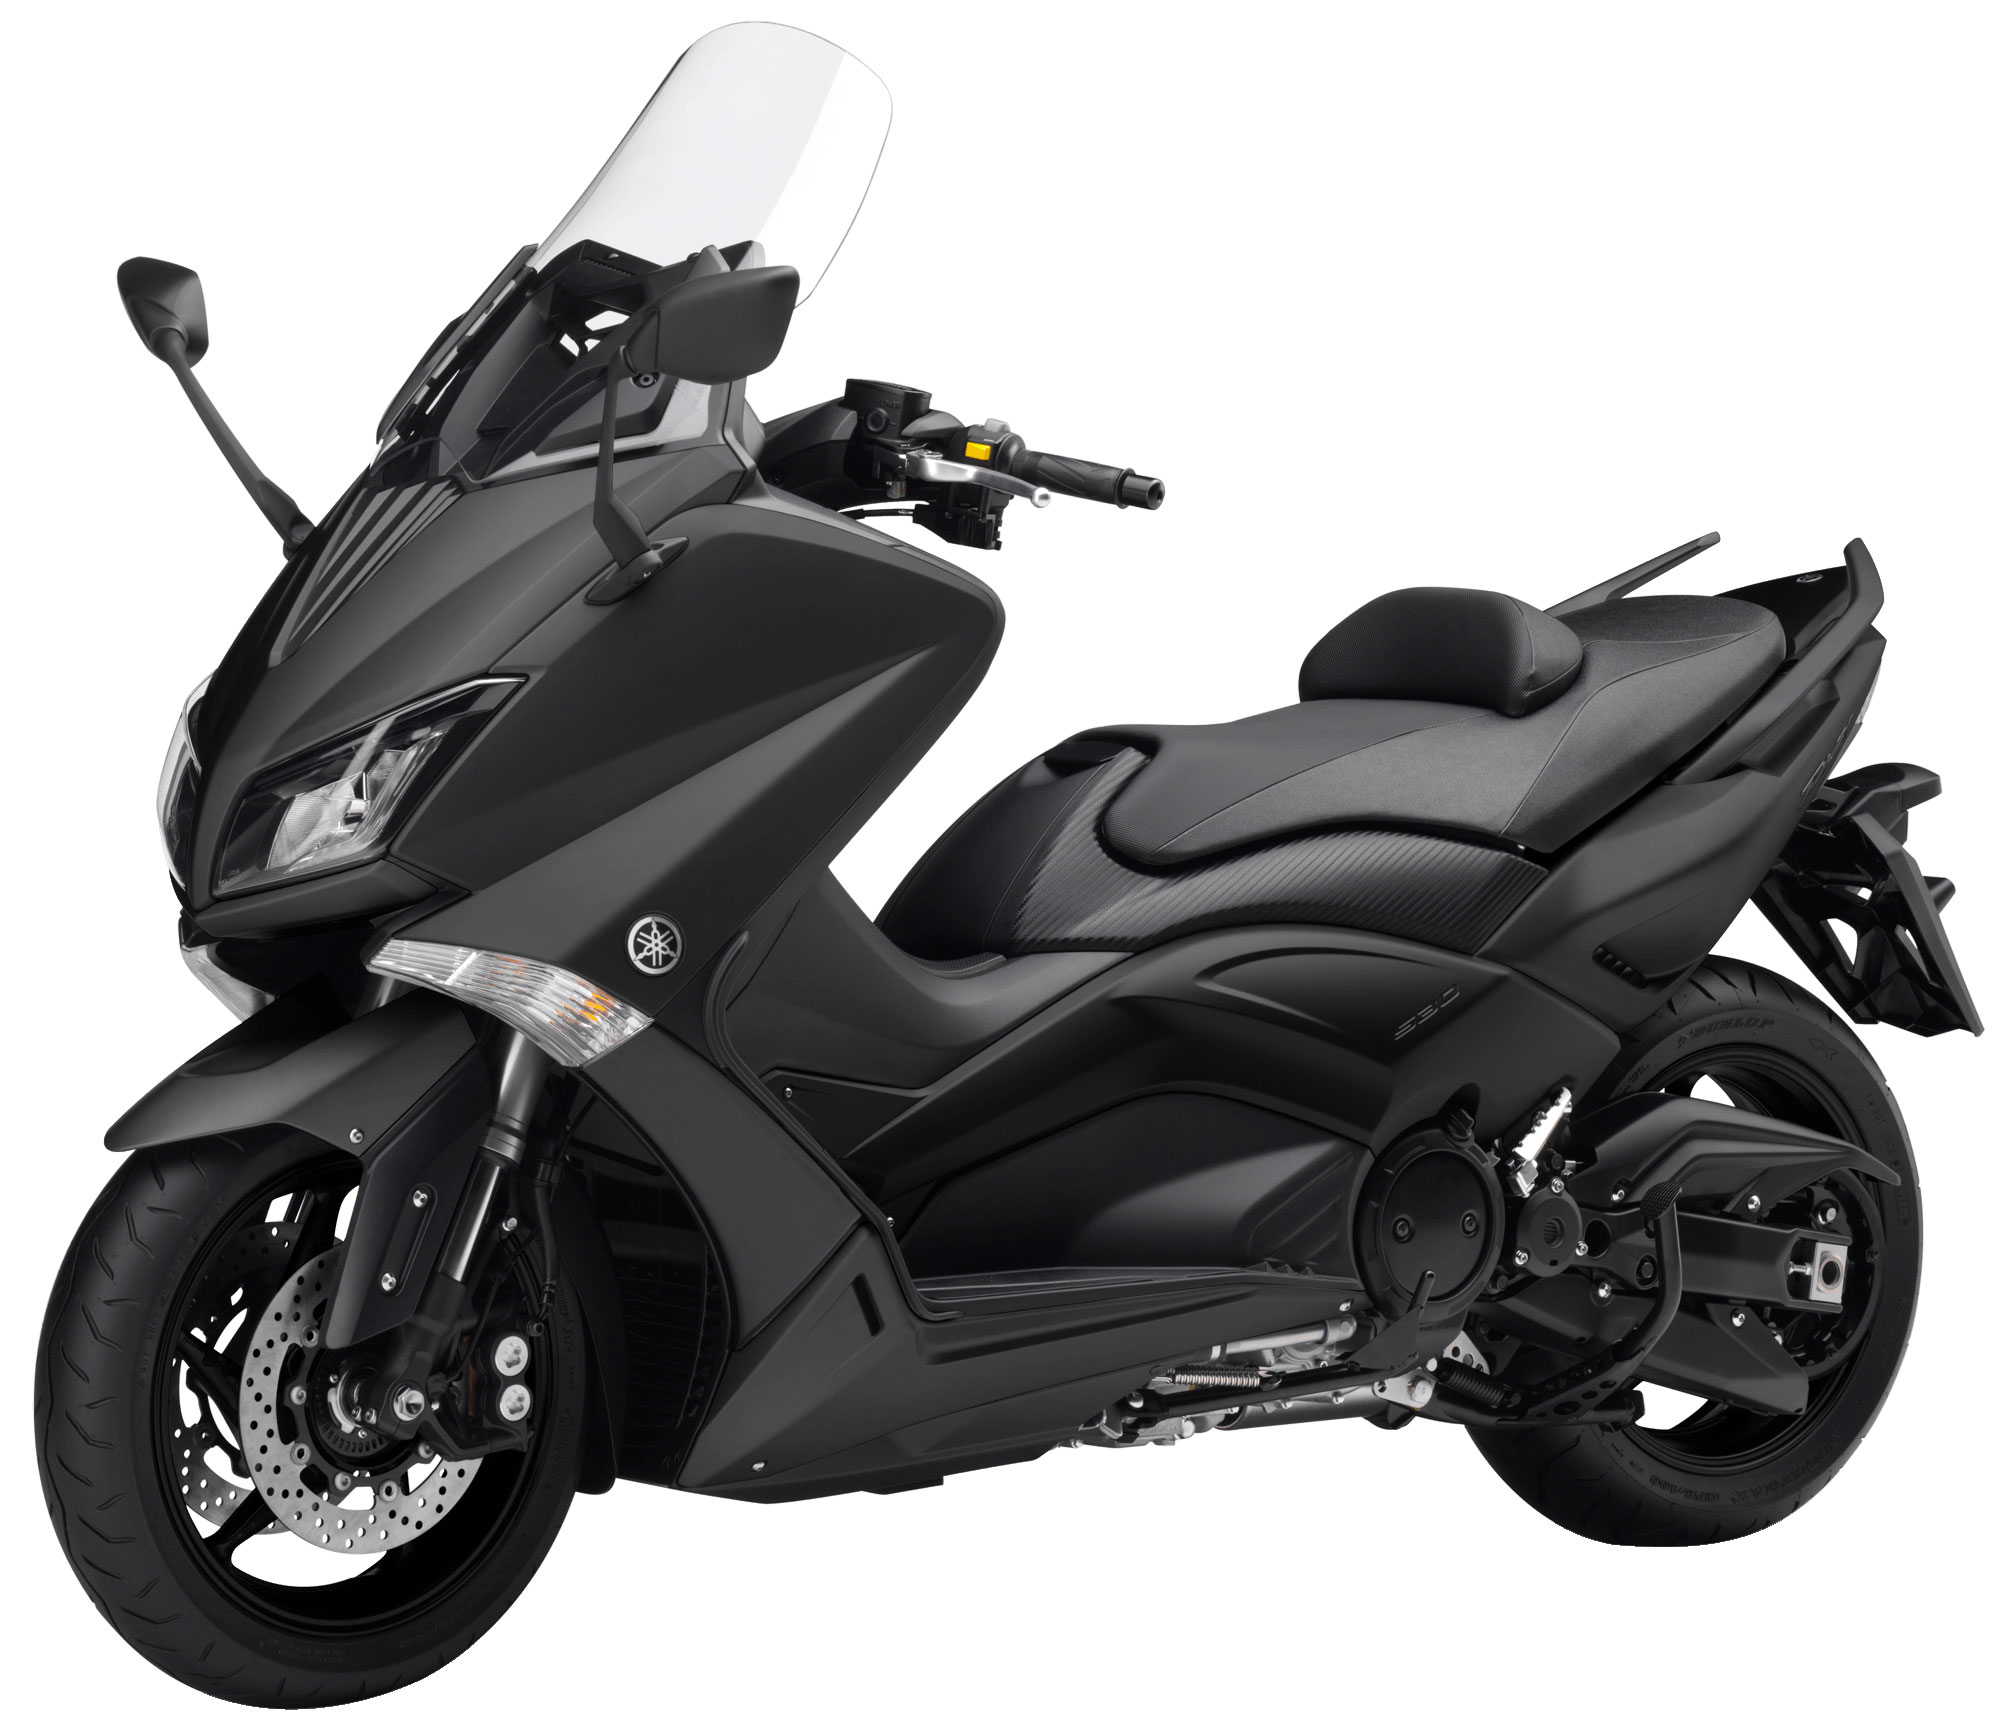 new yamaha tmax variants coming soon bikesrepublic. Black Bedroom Furniture Sets. Home Design Ideas